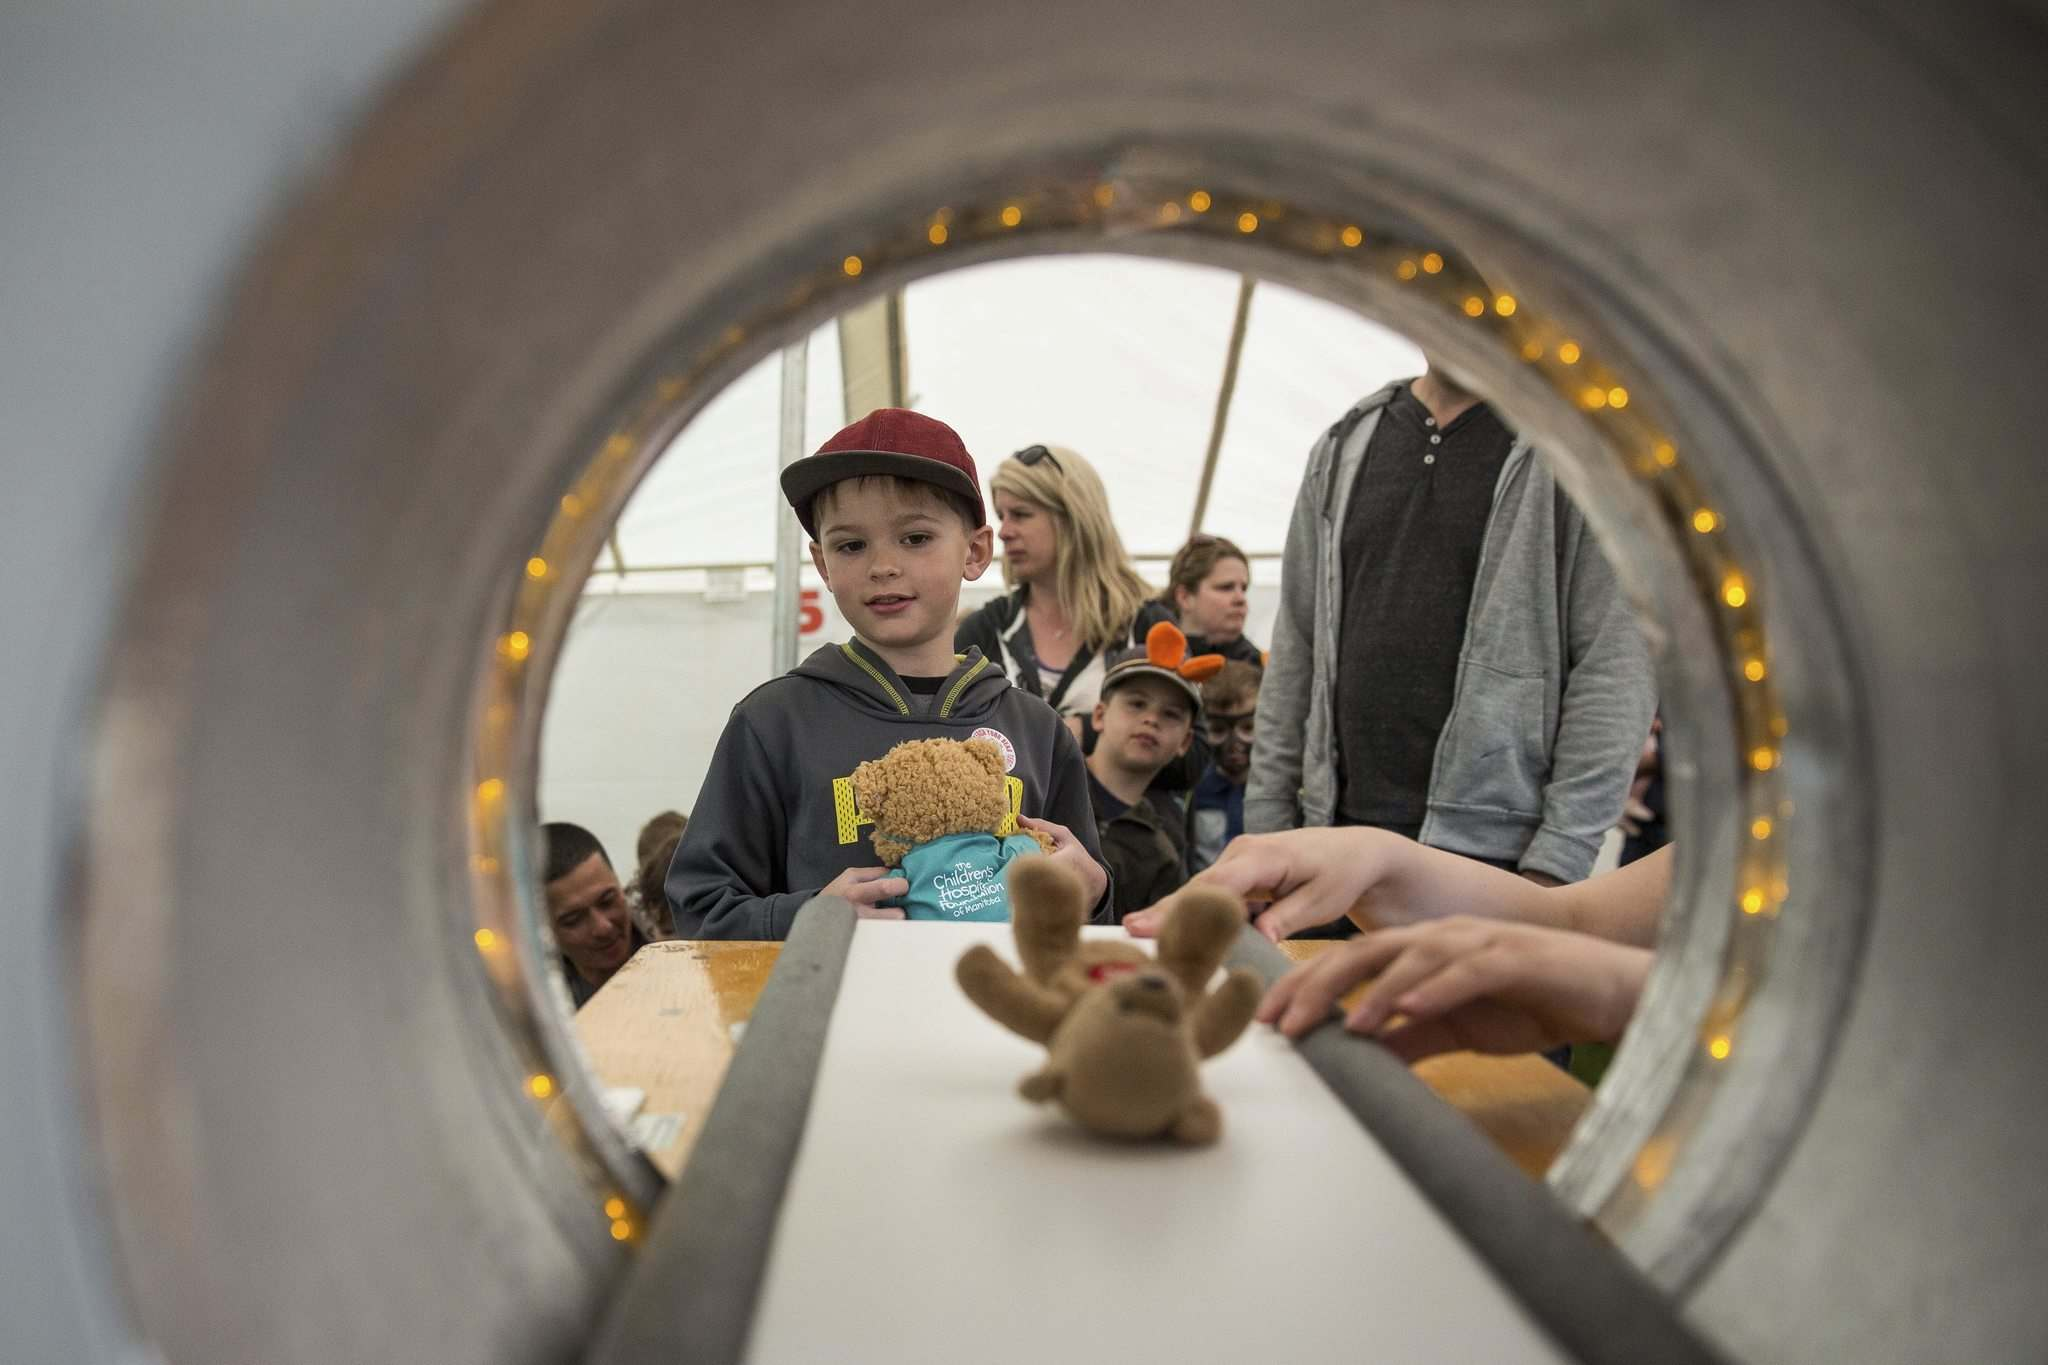 MIKE DEAL / WINNIPEG FREE PRESS files</p><p>The annual Teddy Bears&rsquo; Picnic is today at Assiniboine Park.</p></p>